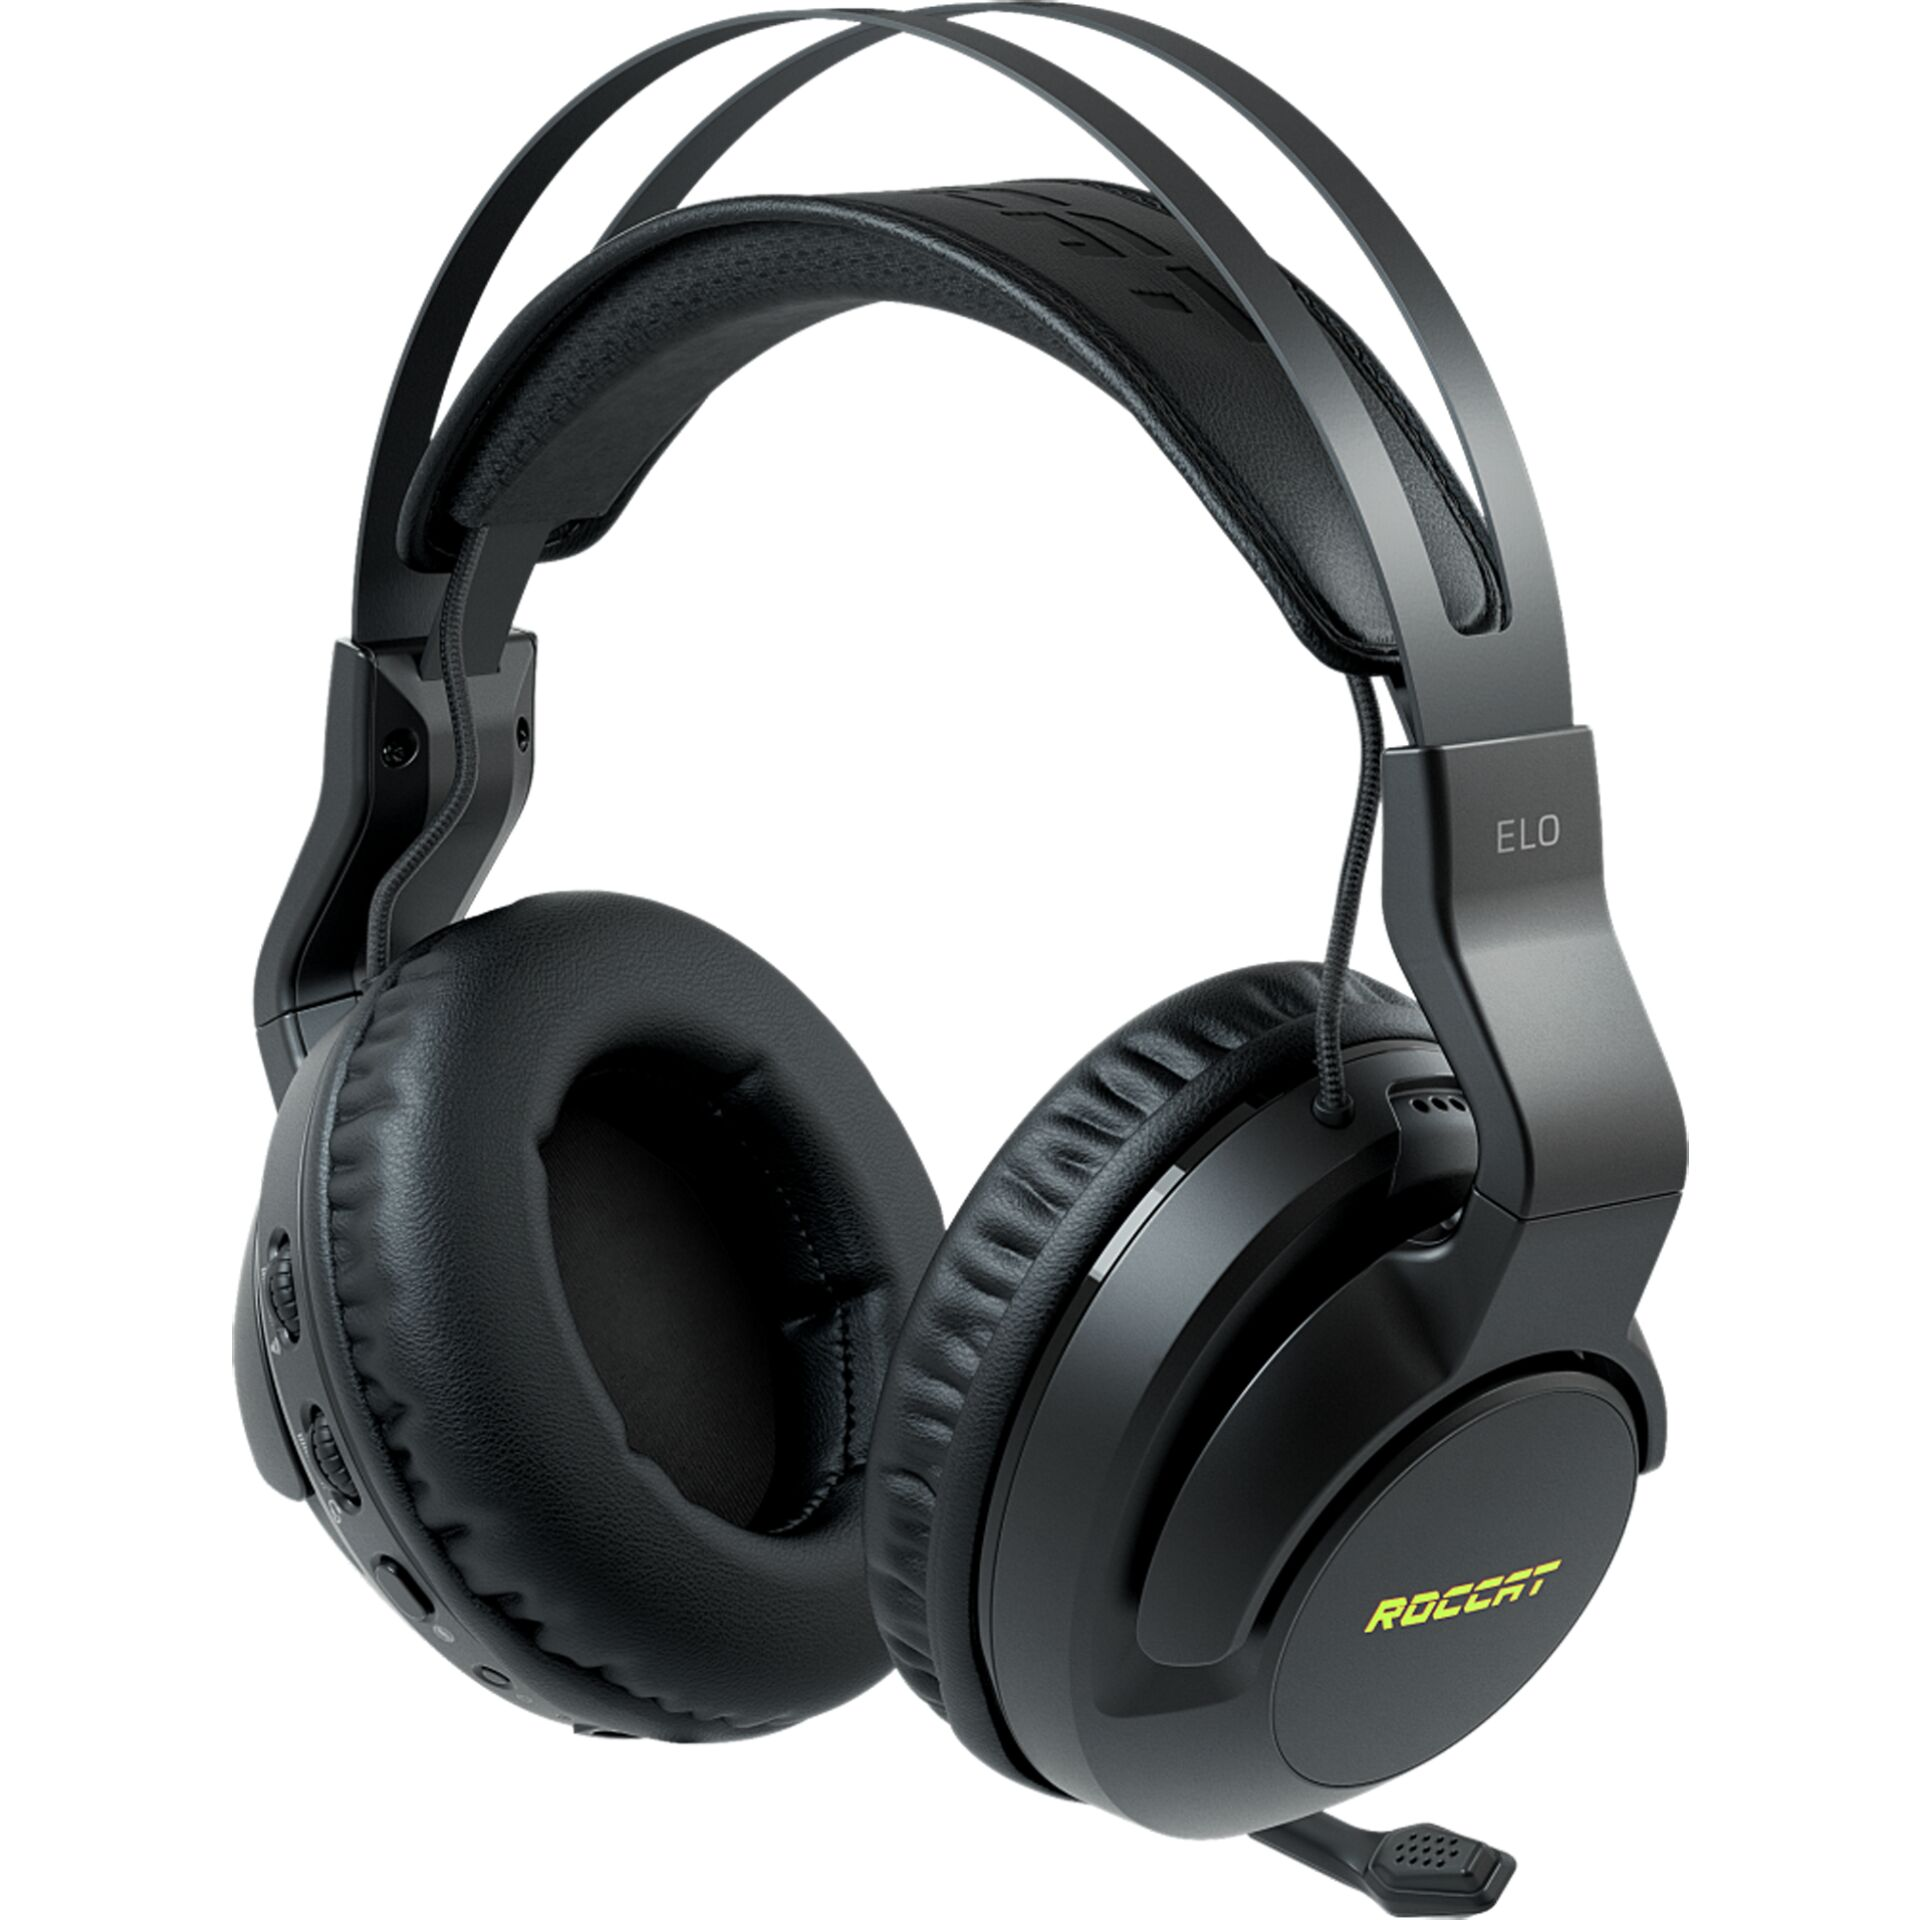 Roccat ELO 7.1 AIR High-Res Over-Ear Stereo Gaming Headset